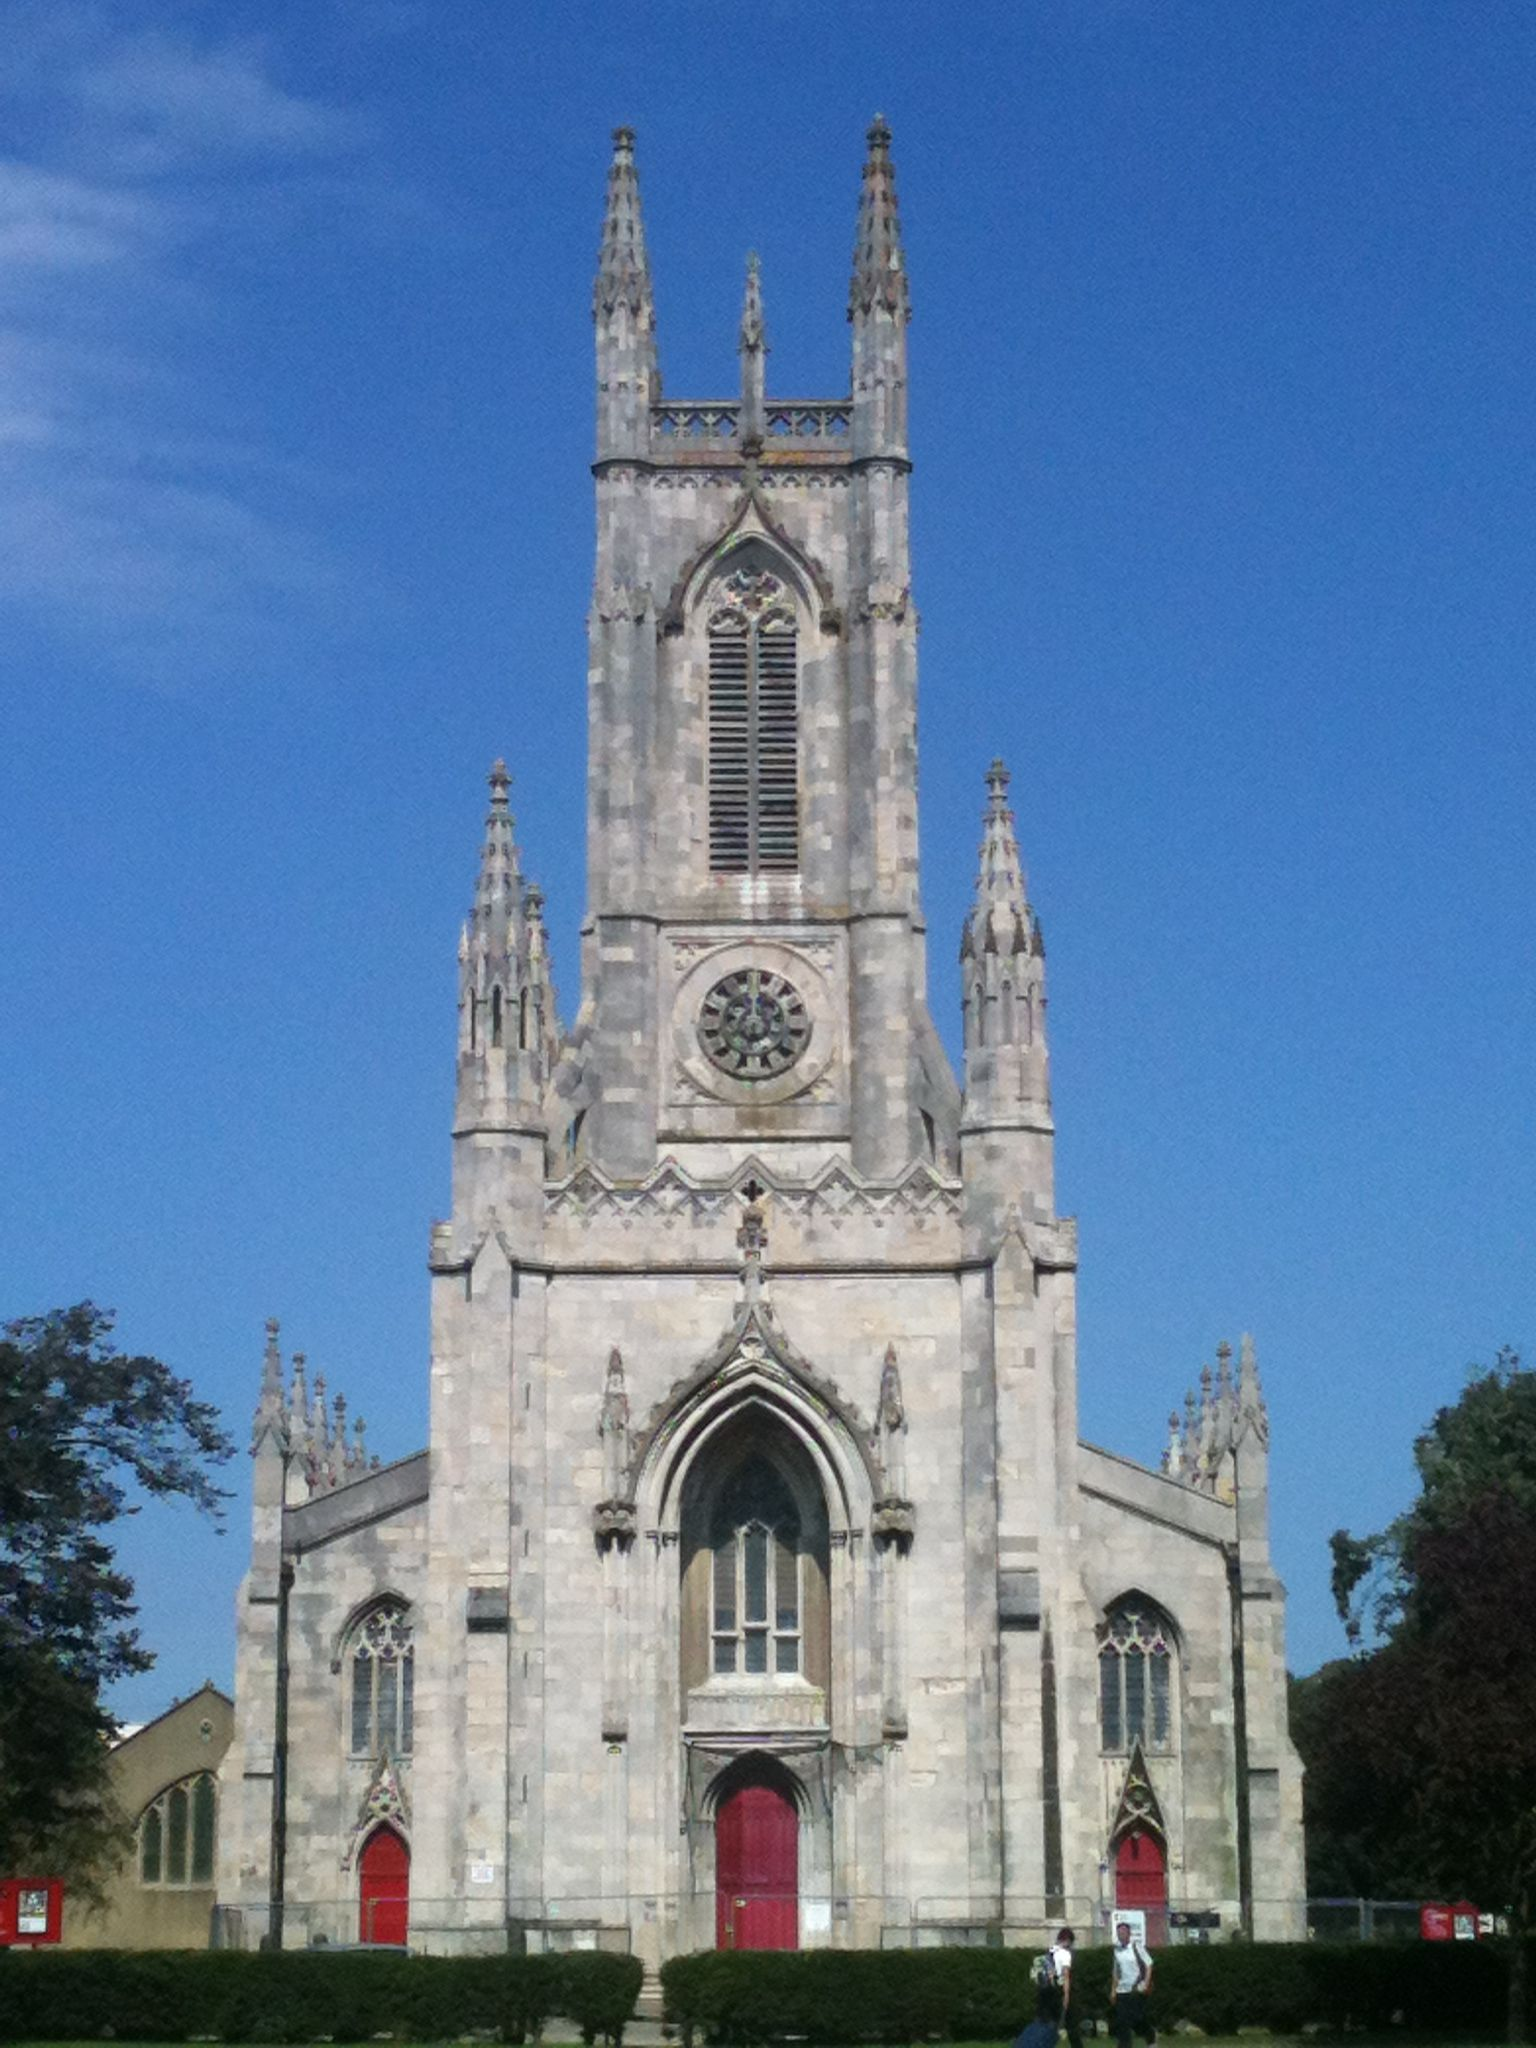 St Peter's Church in Brighton, Sussex. Known as Brighton's